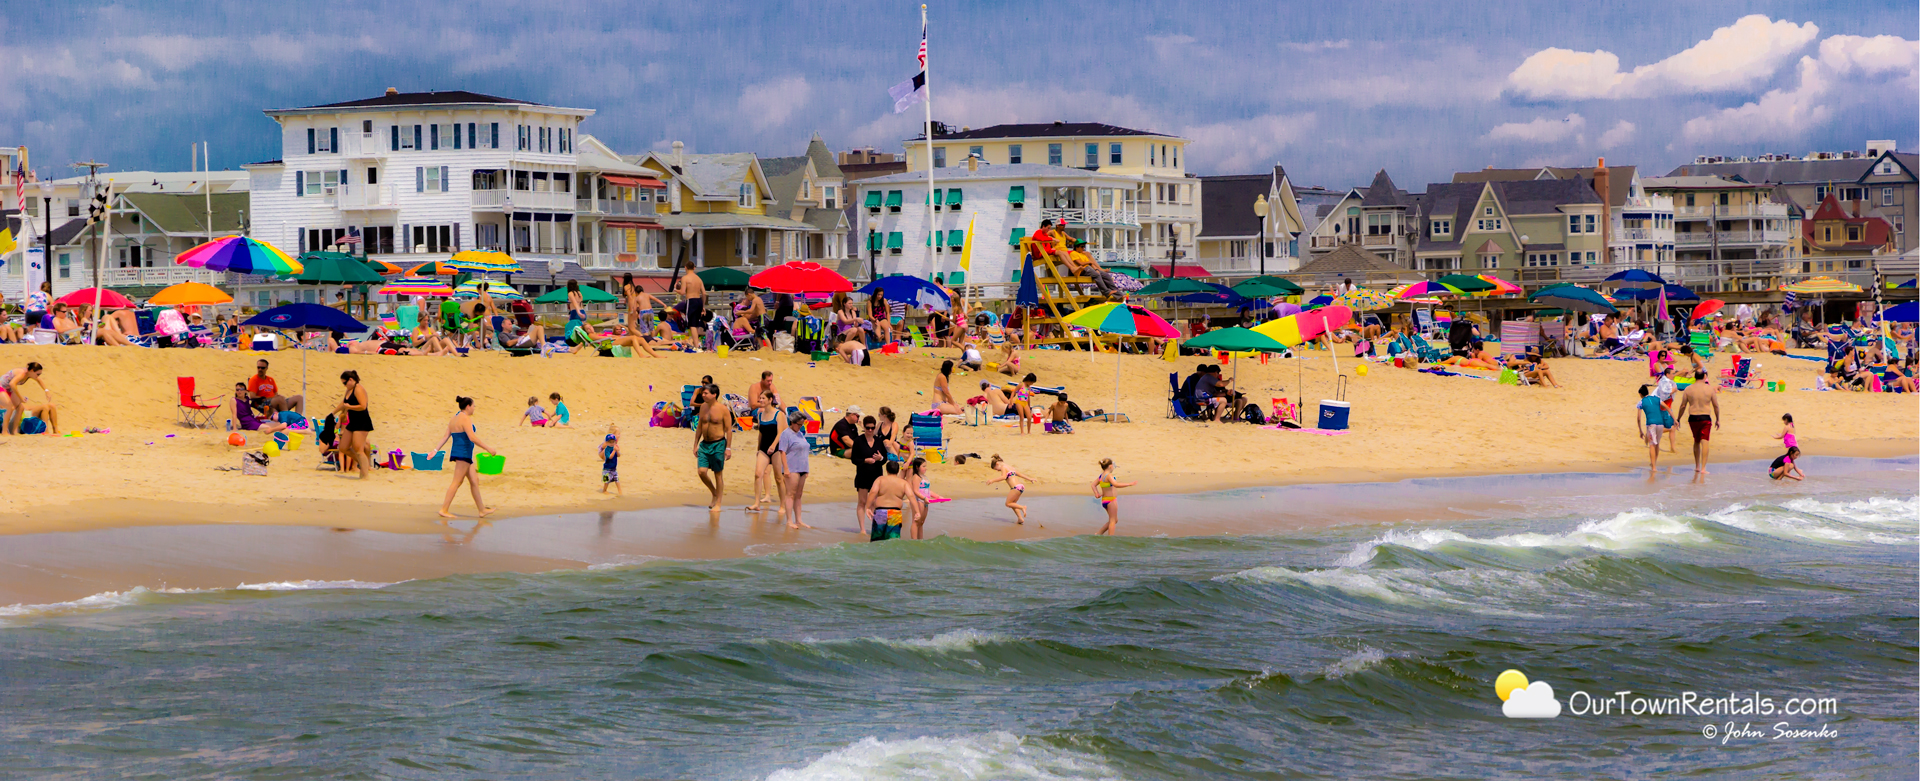 BOOK DIRECT & SAVE - NO COMMISSIONS! - NO BOOKING FEES! - JERSEY SHORE VACATION RENTALS